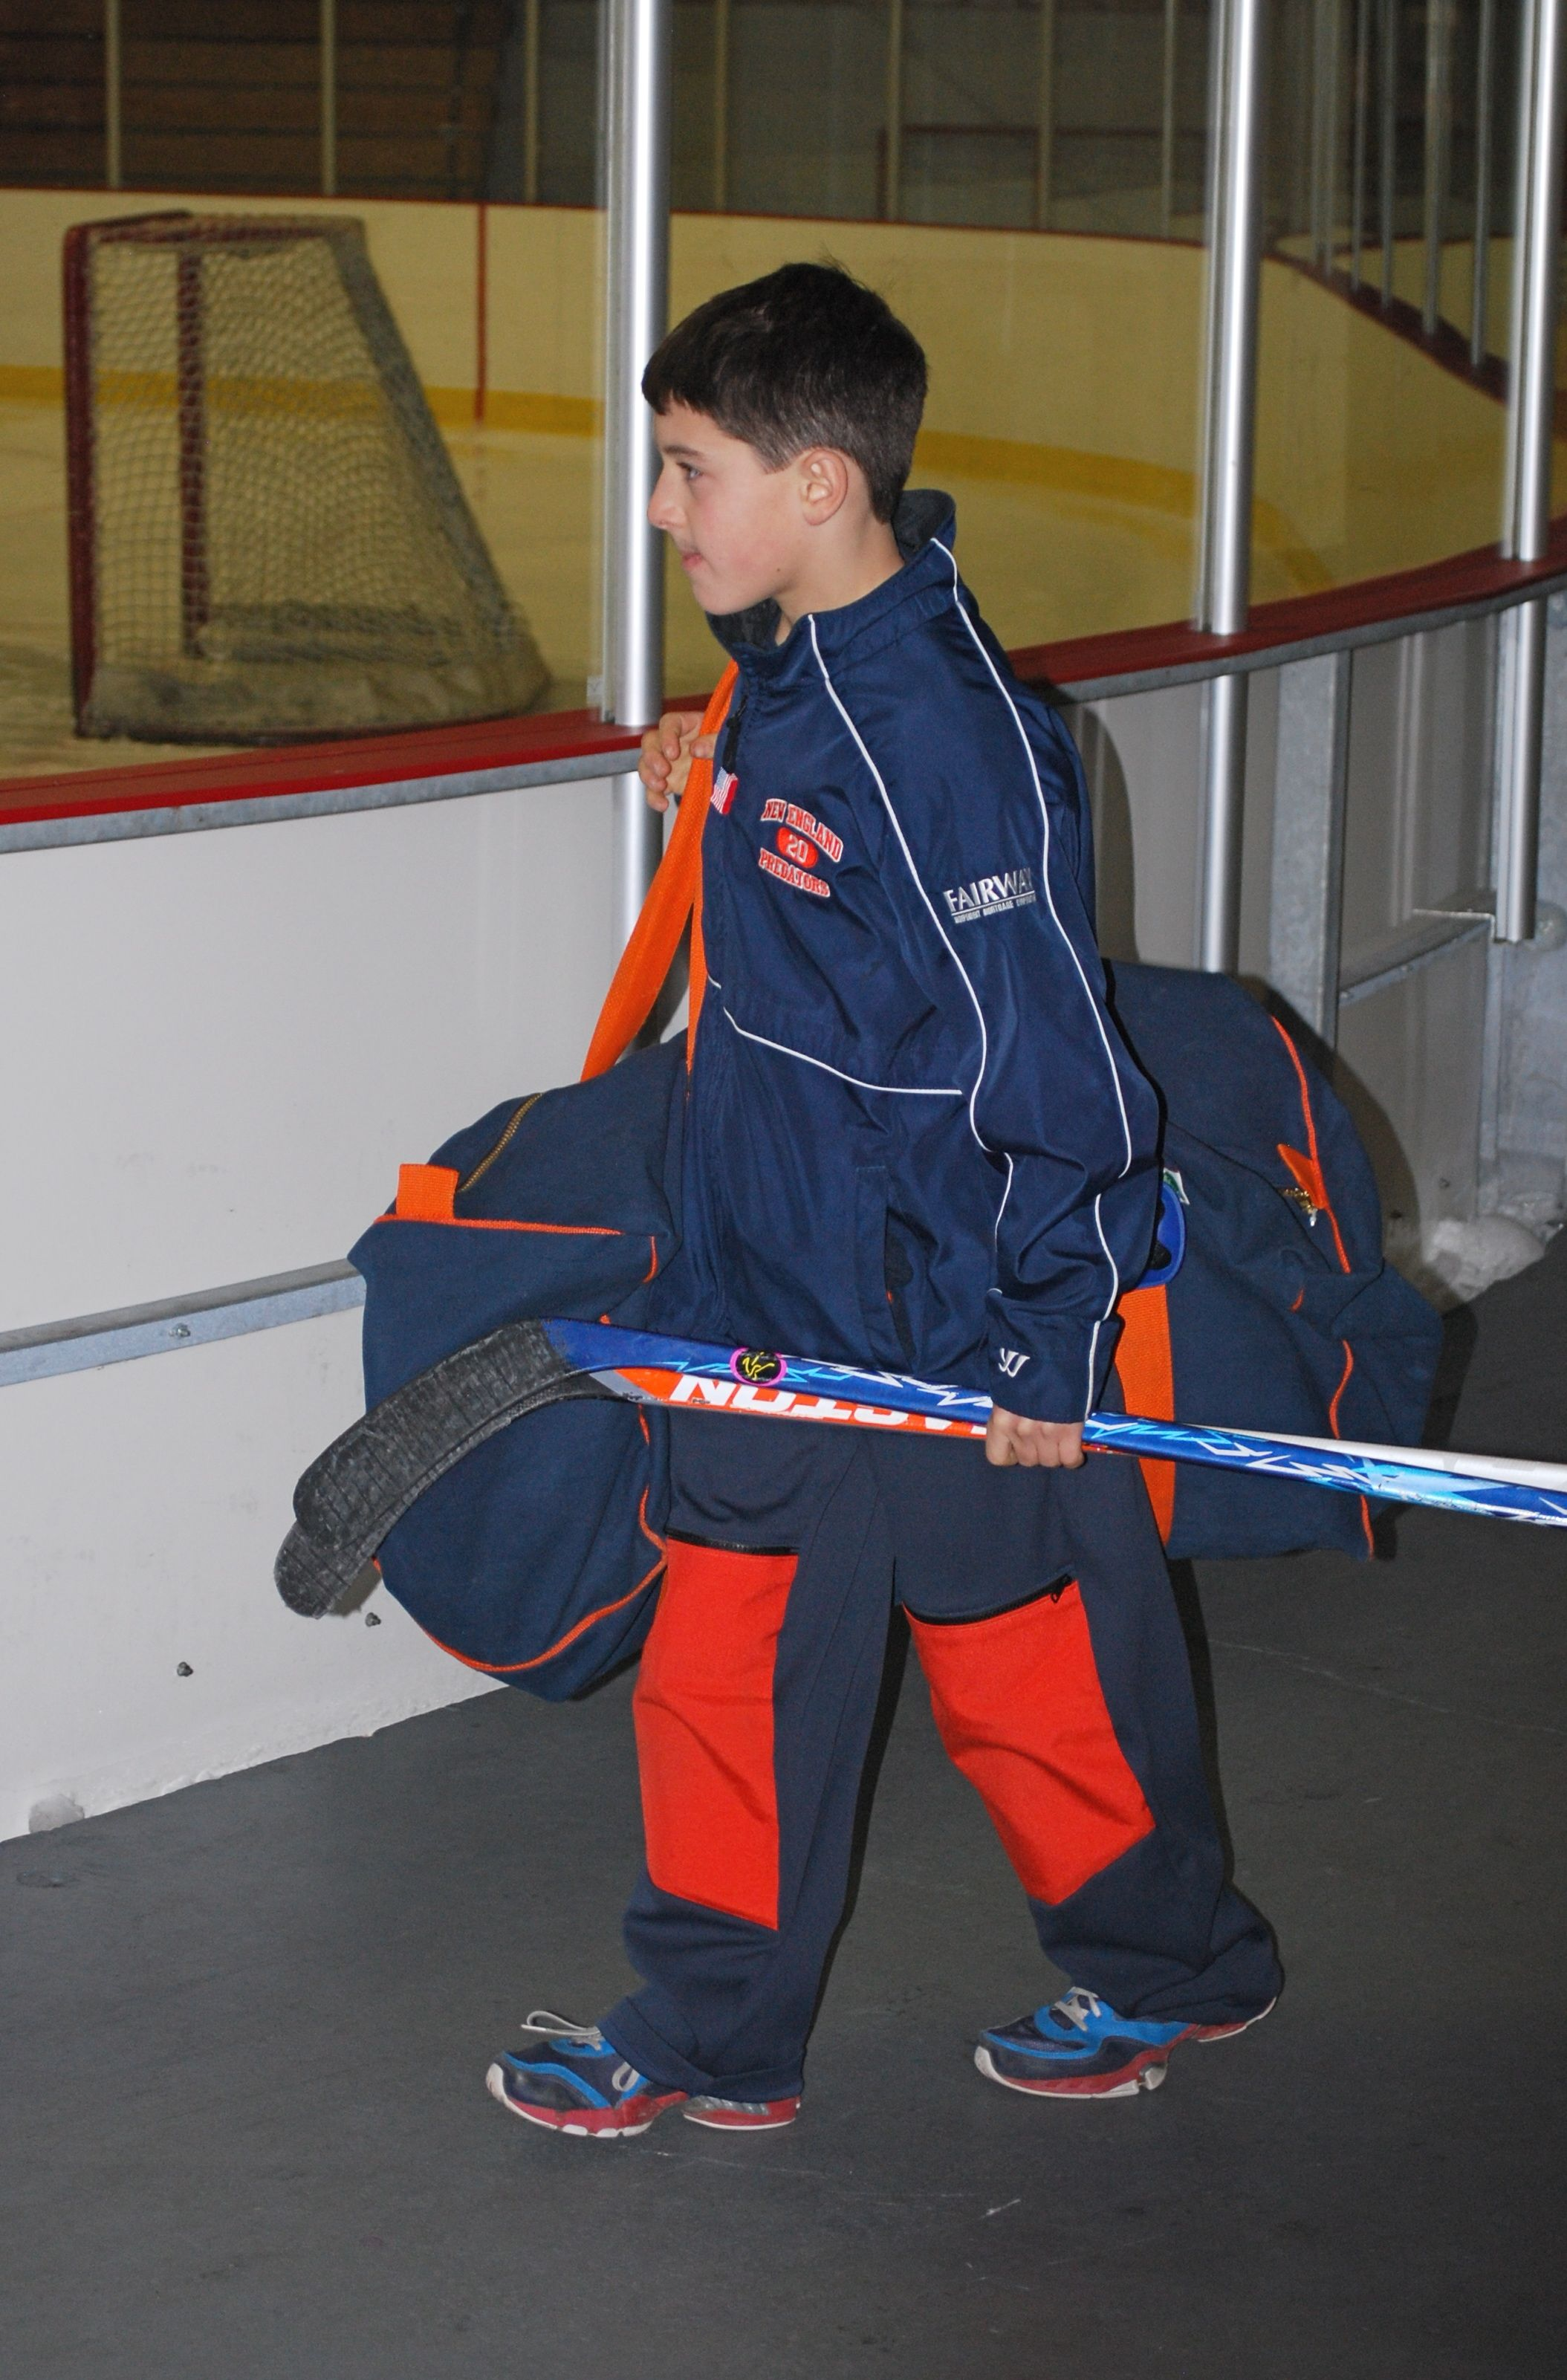 Knockeys knee hockey pants put the pads in to play and